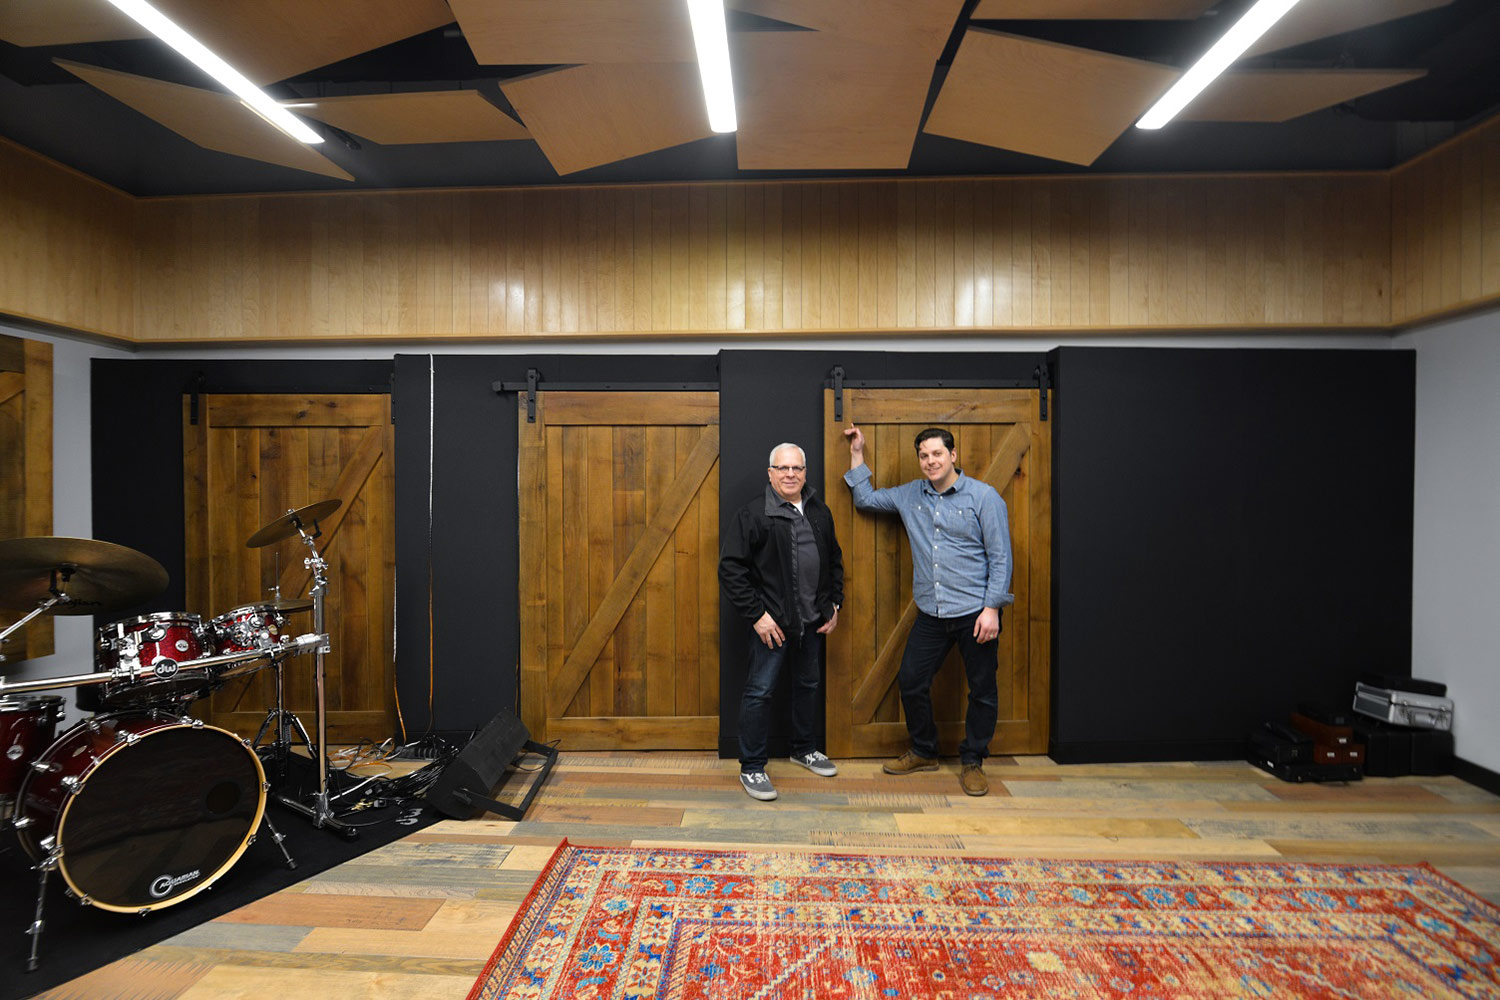 Salvation Army Eastern Territory Recording Studio. WSDG was called to redesign the complex. Live Room, Phill Bulla (Salvation Army) and Matthew Ballos (WSDG).